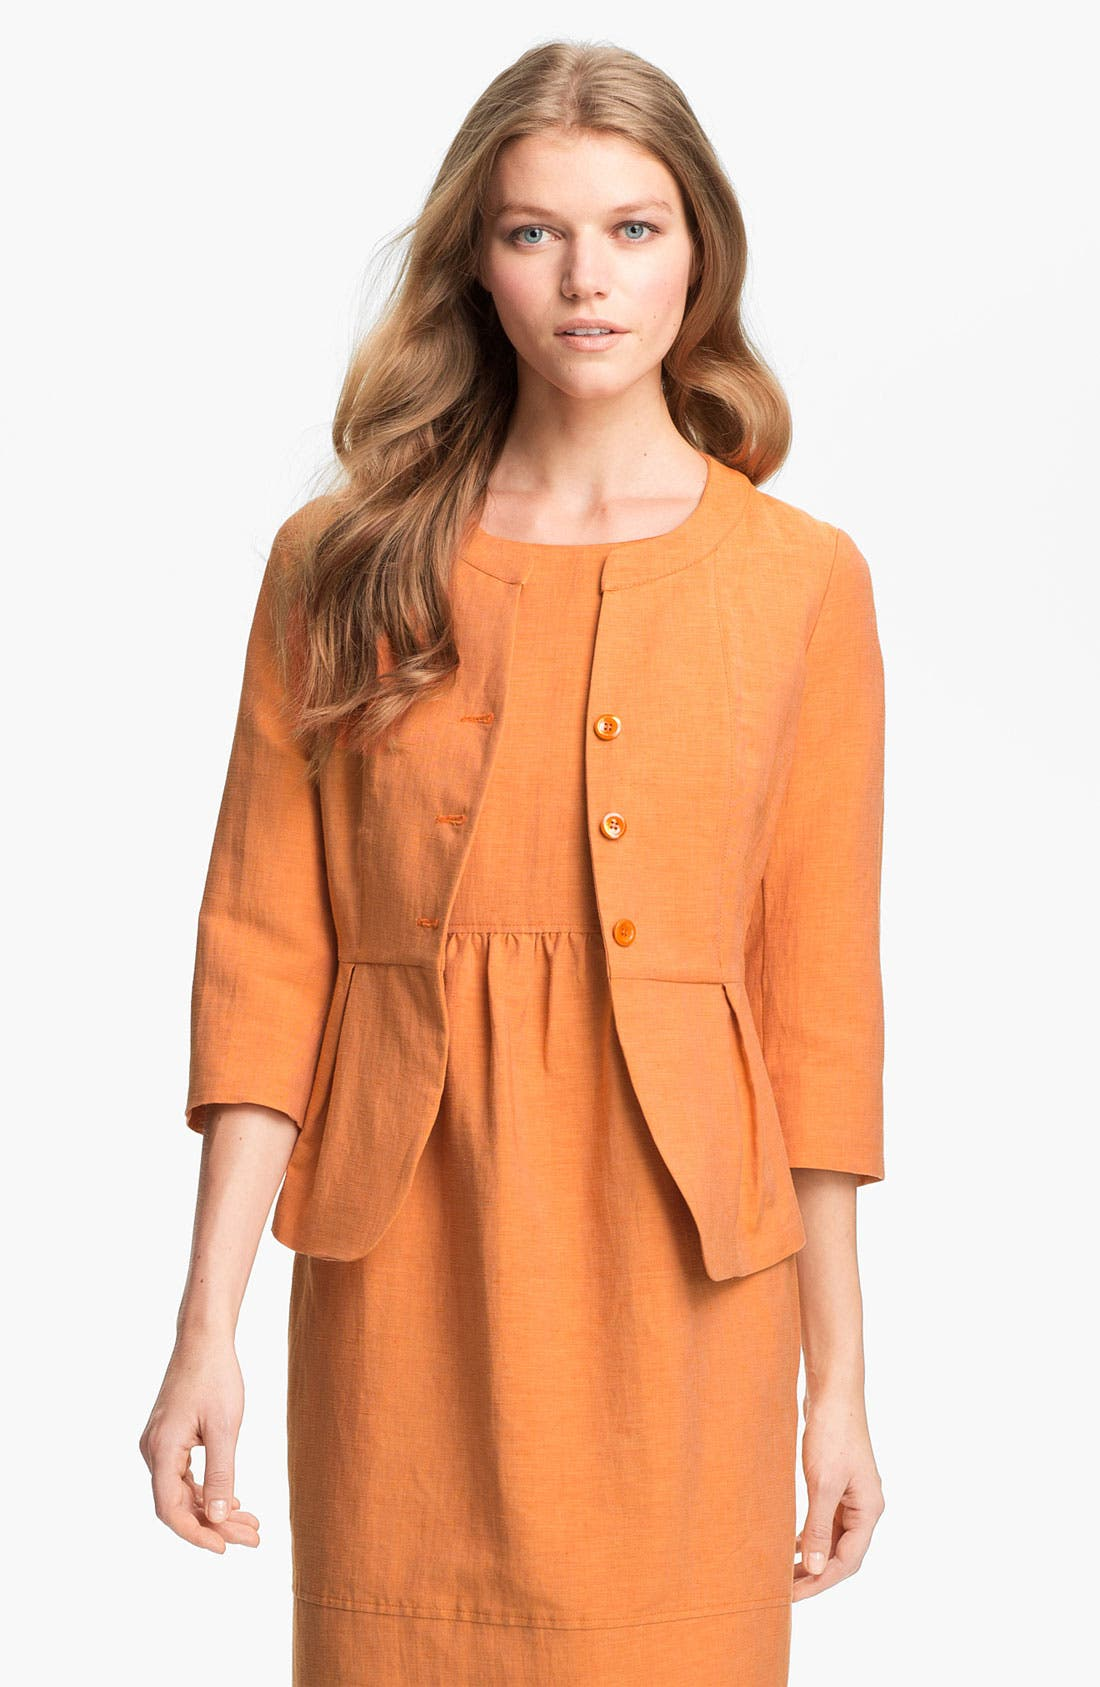 Alternate Image 1 Selected - Weekend Max Mara 'Ozieri' Jacket